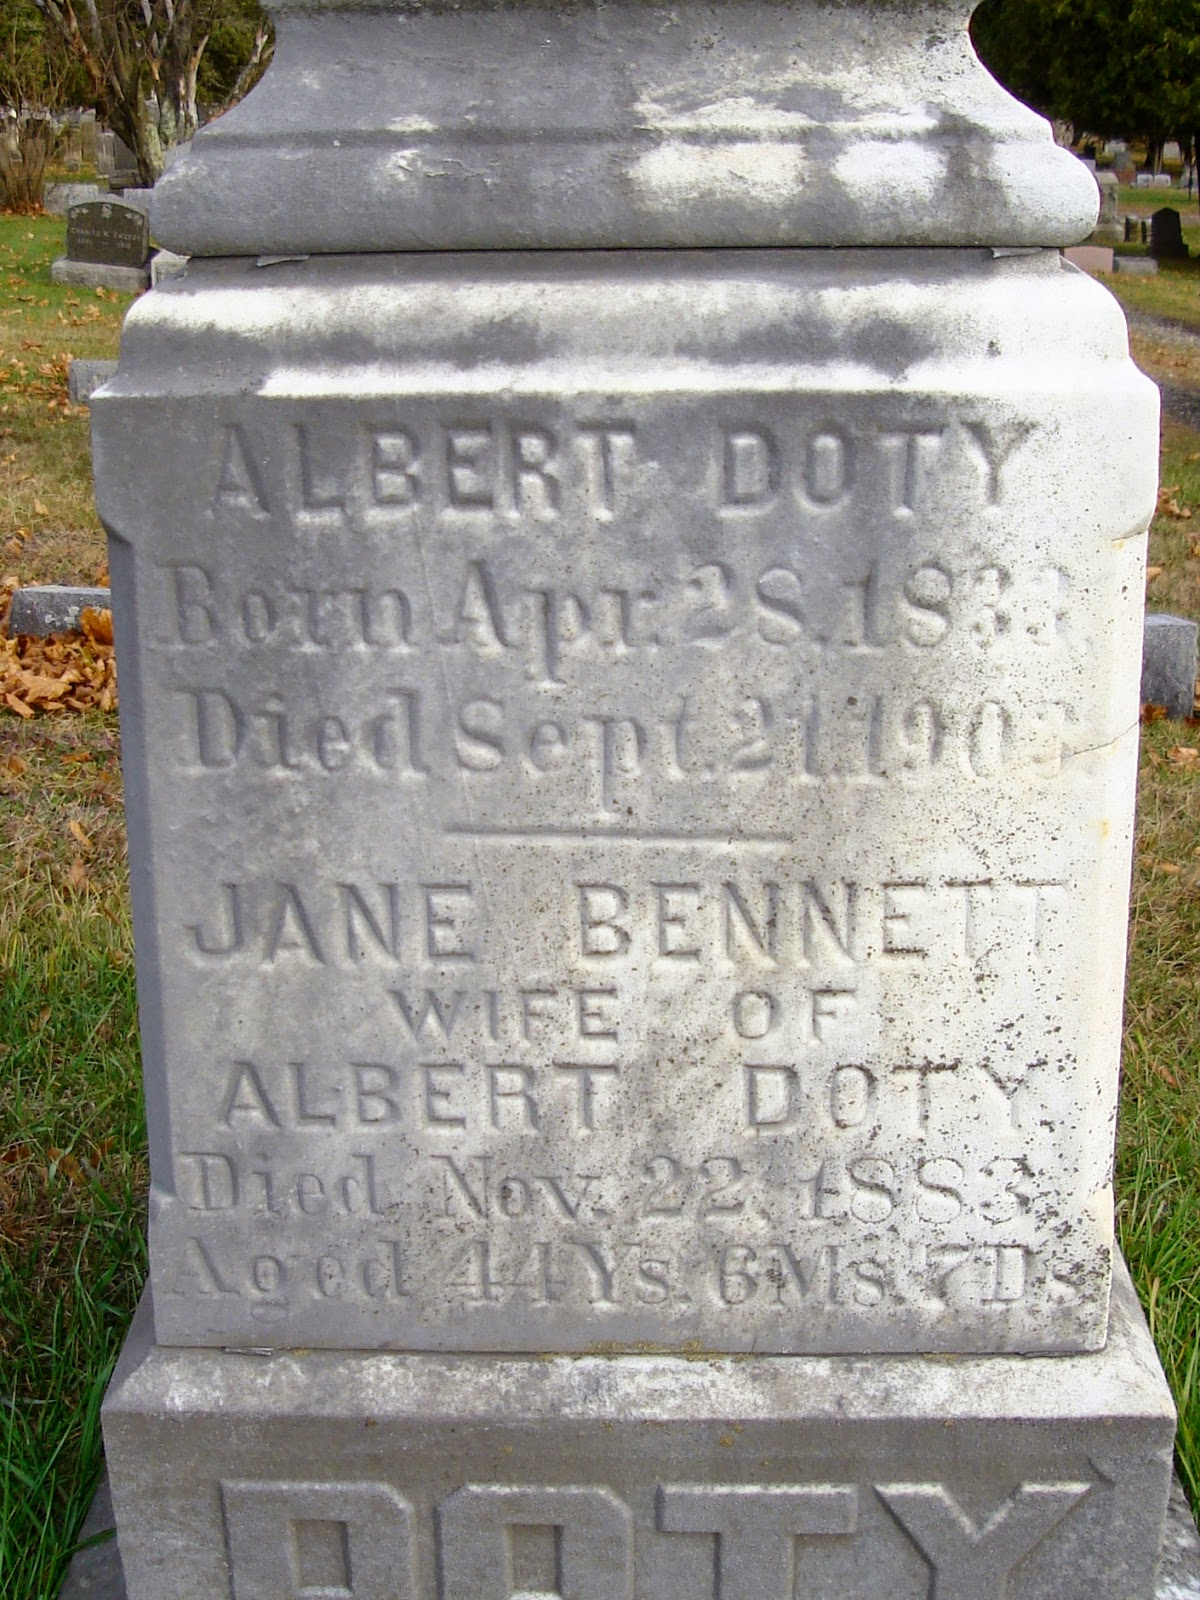 Albert Doty and Jane Bennett Tombstone, Wallkill Cemetery, Middletown, NY